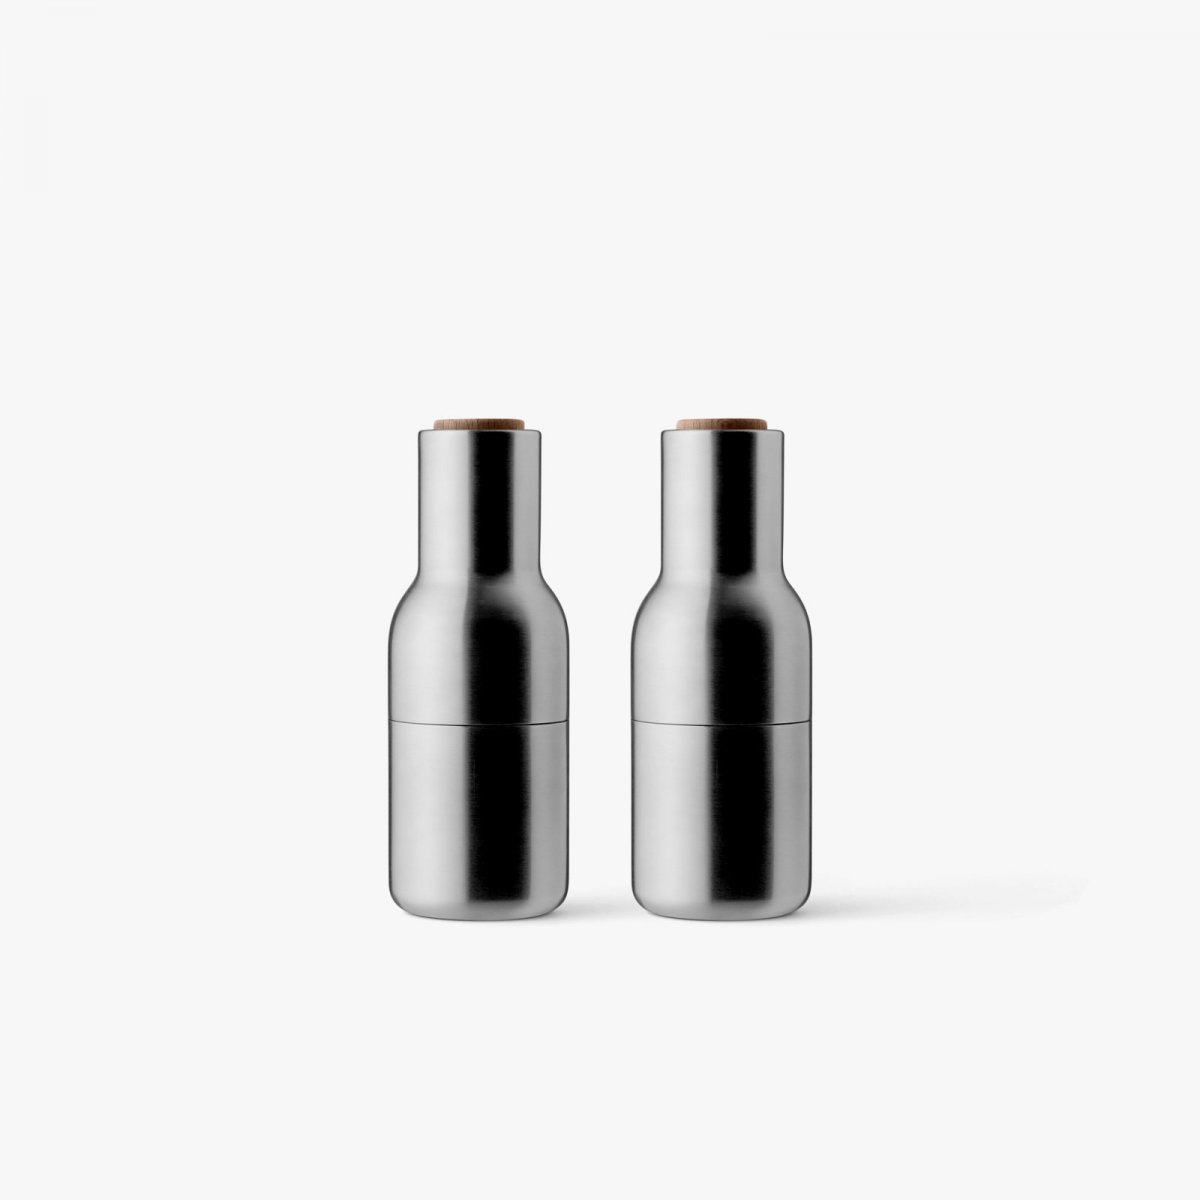 Bottle Grinders, brushed stainless steel + walnut.